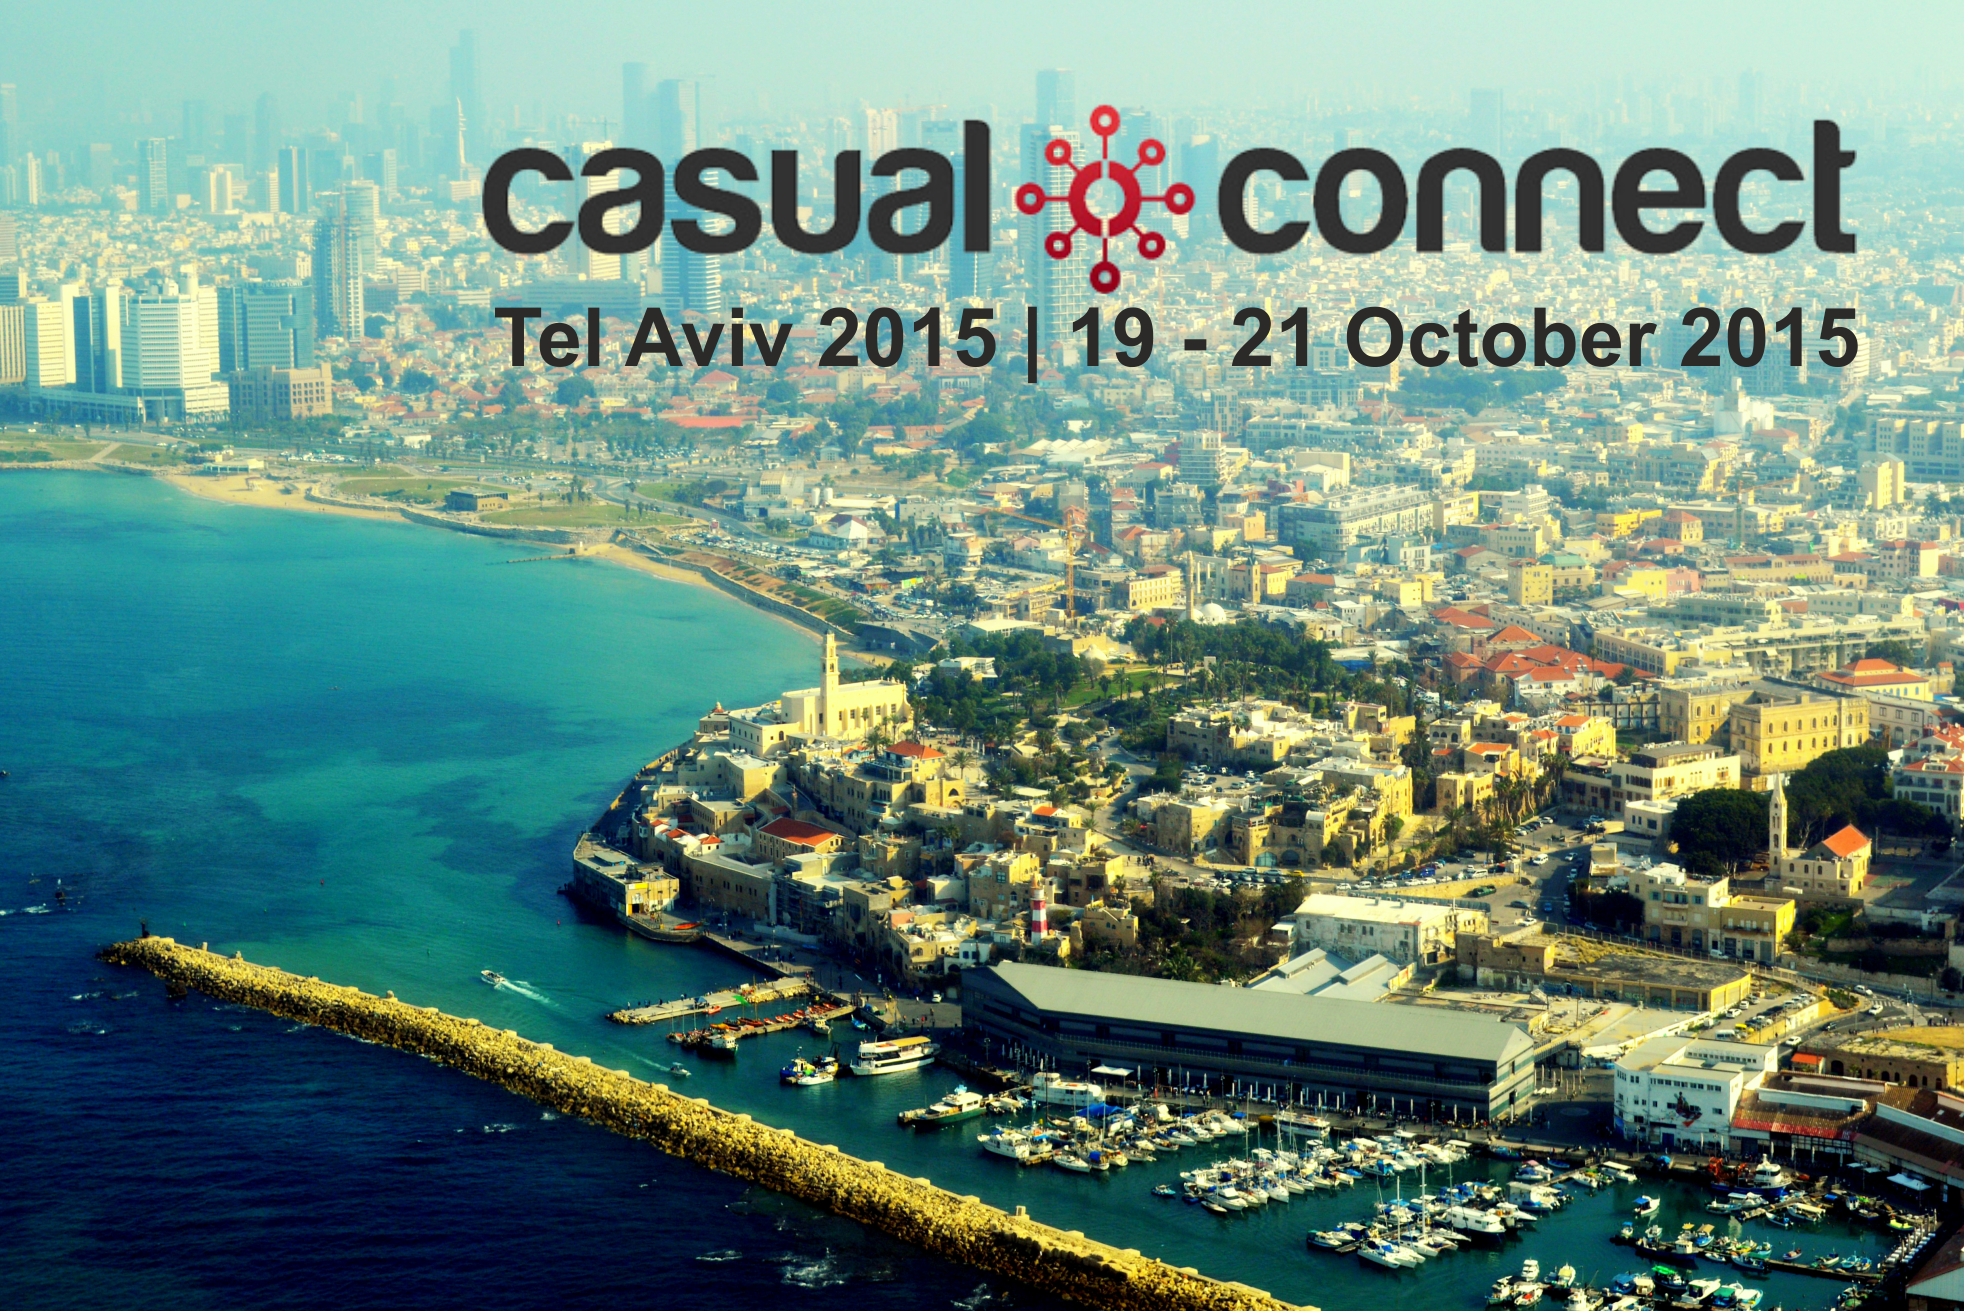 Attending the Casual Connect conference